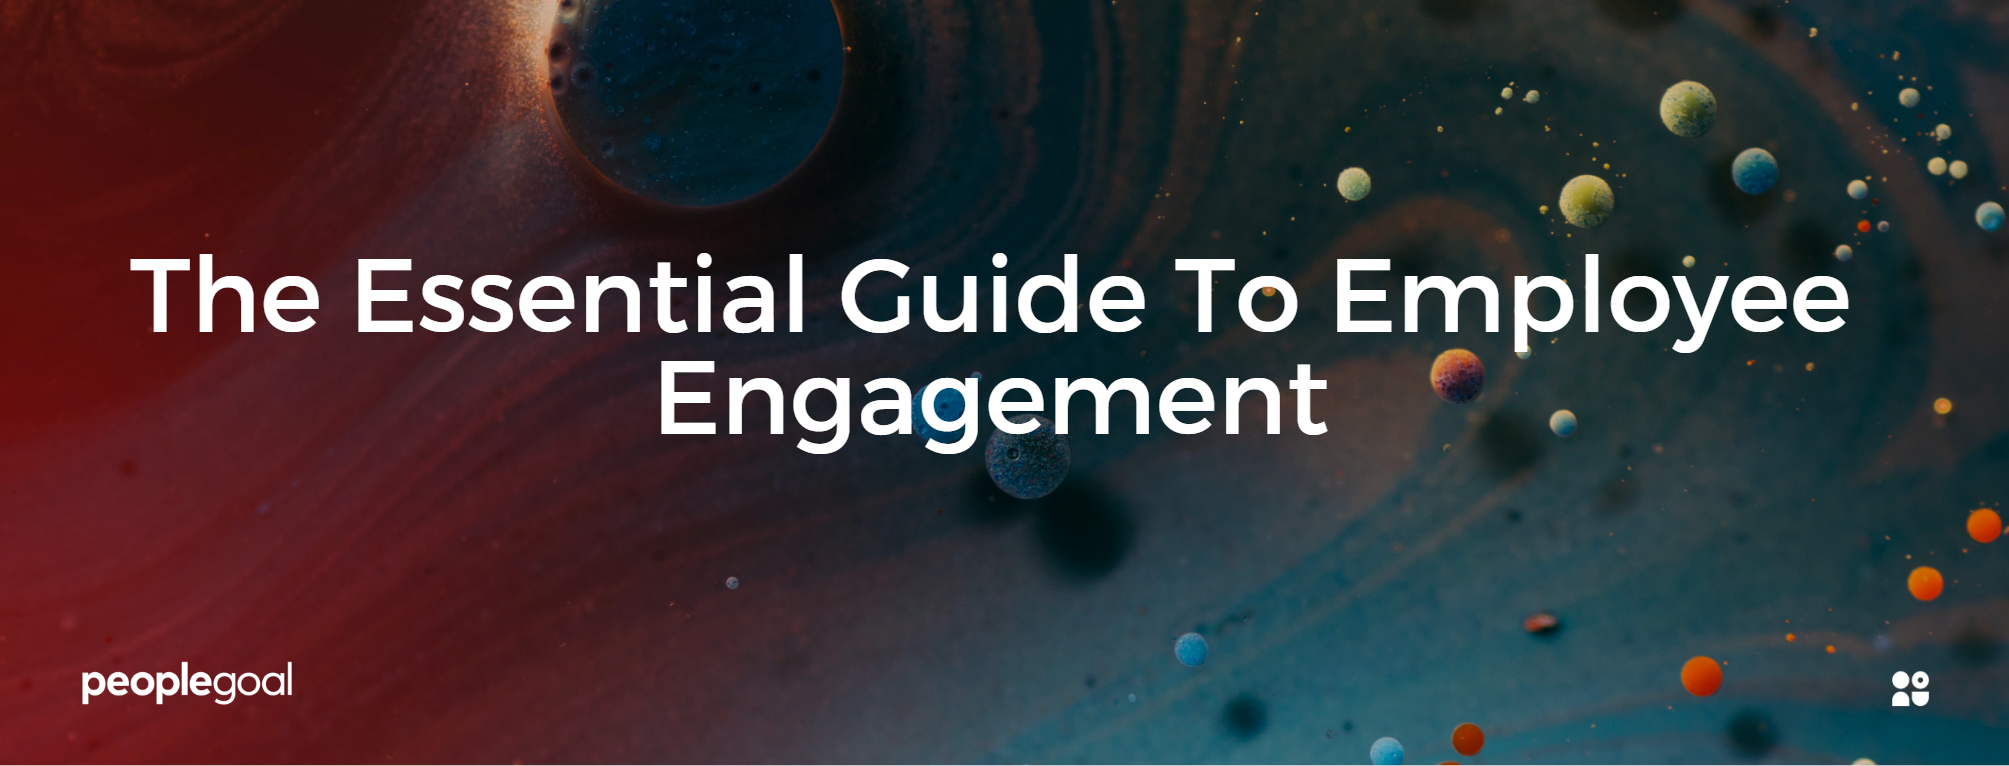 Employee engagement is directly linked to performance. Engaged employees are more suited to help an organization achieve its objectives. This guide will help you understand what is employee engagement.